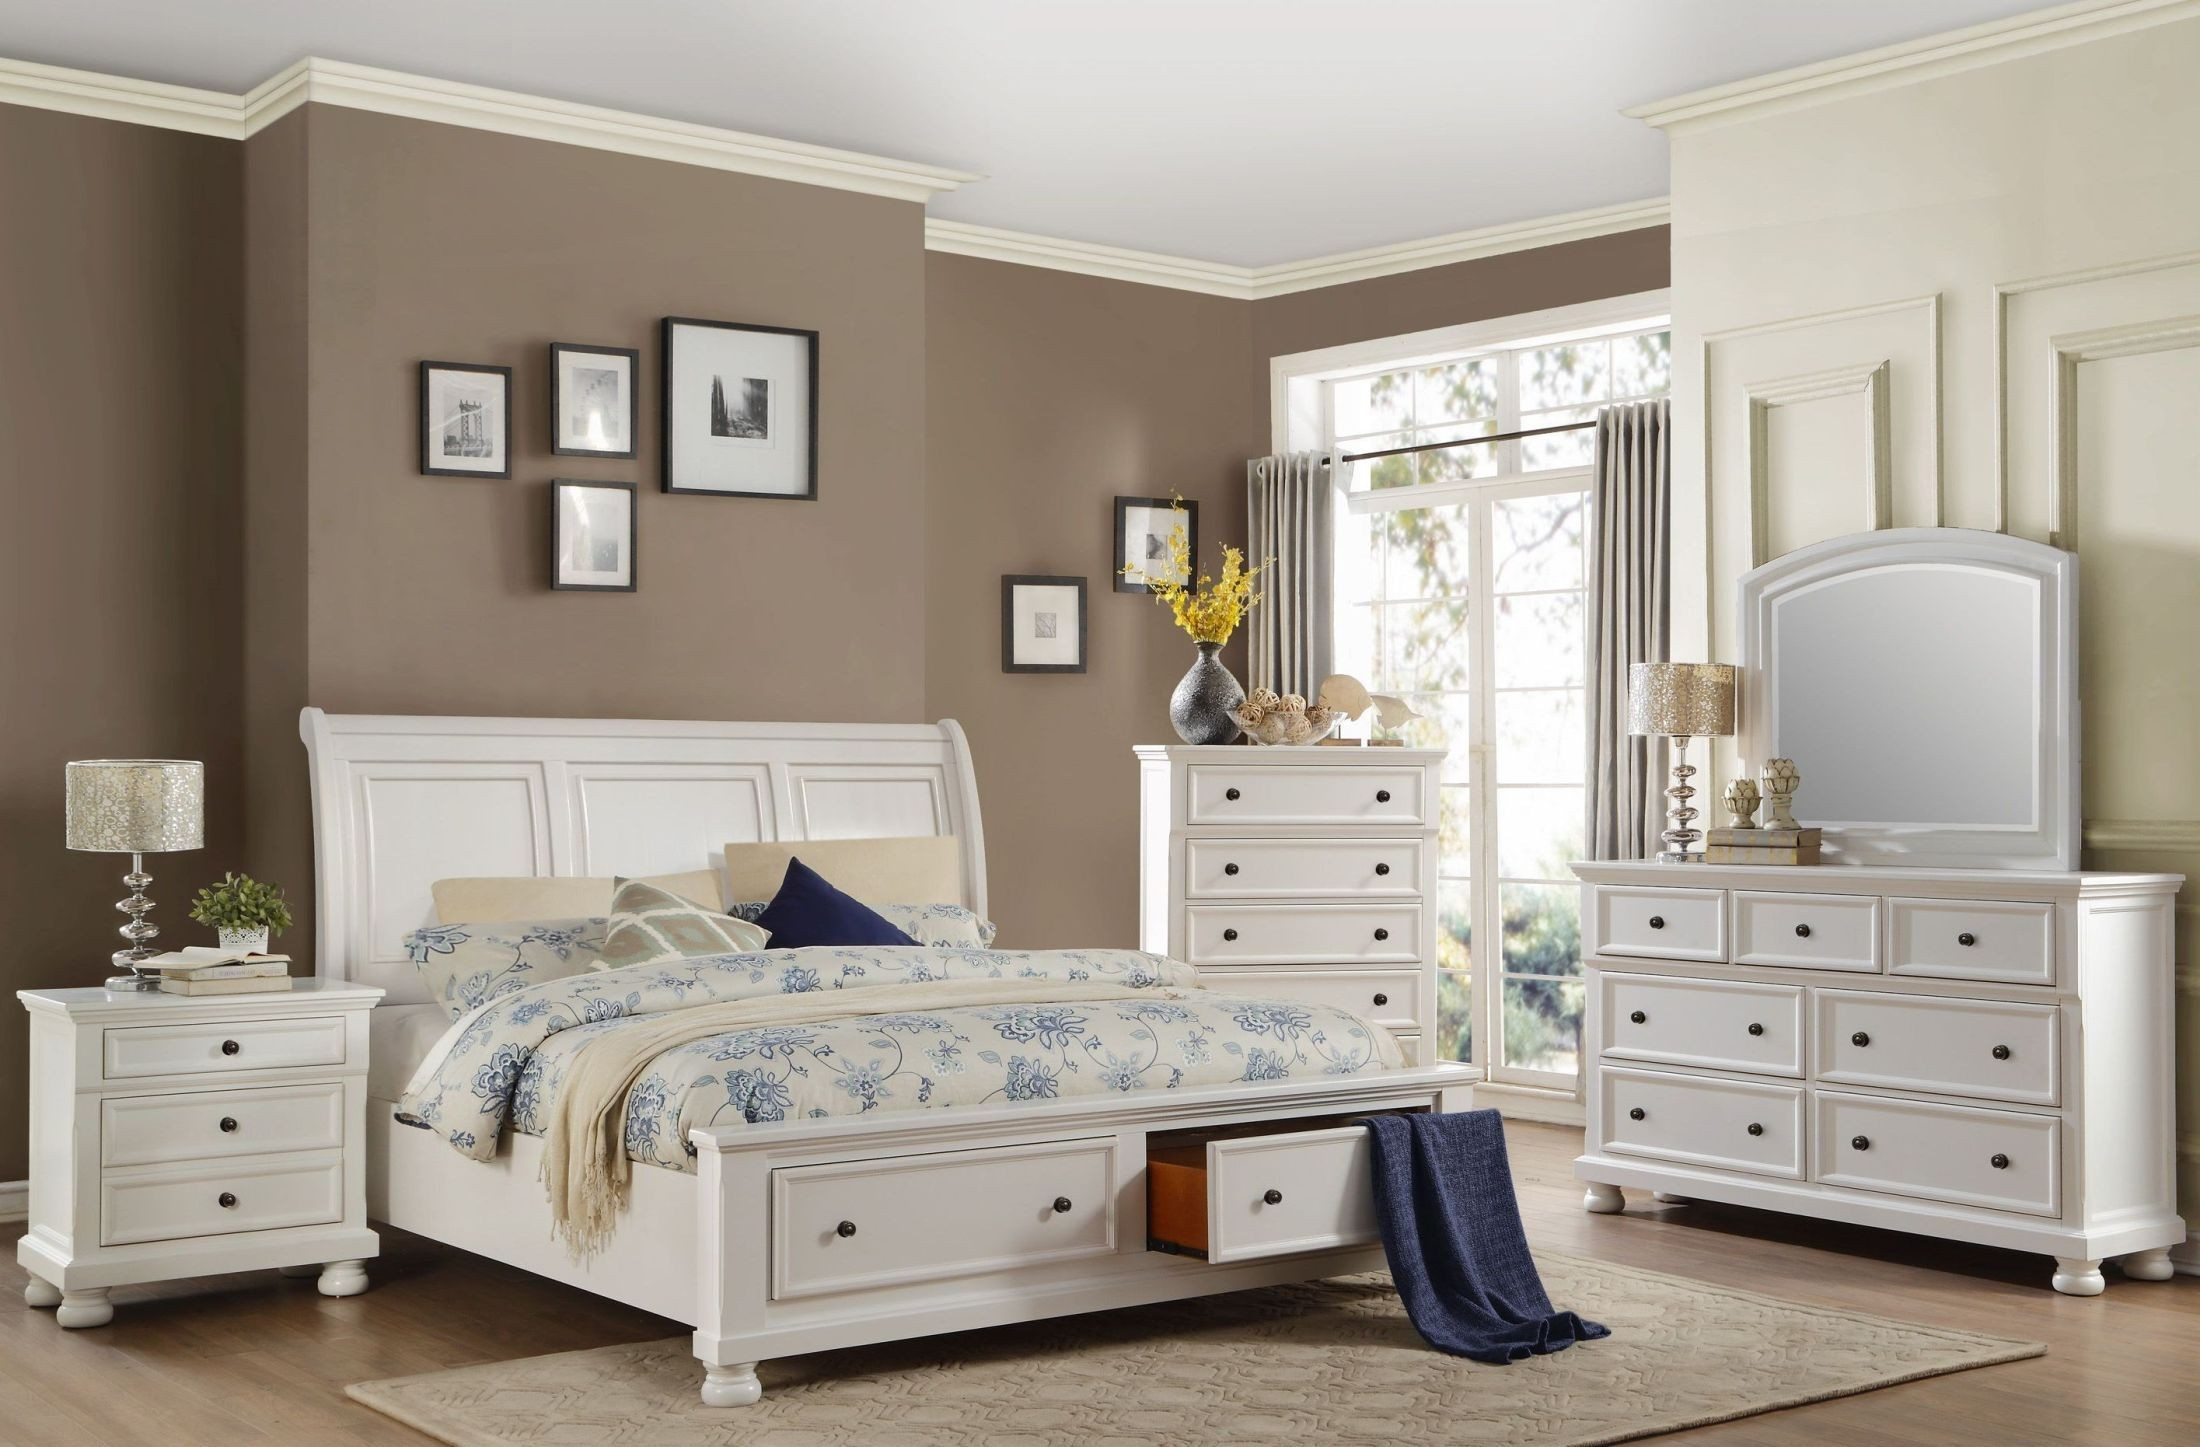 Laurelin white sleigh storage bedroom set from homelegance for White bedroom set with storage